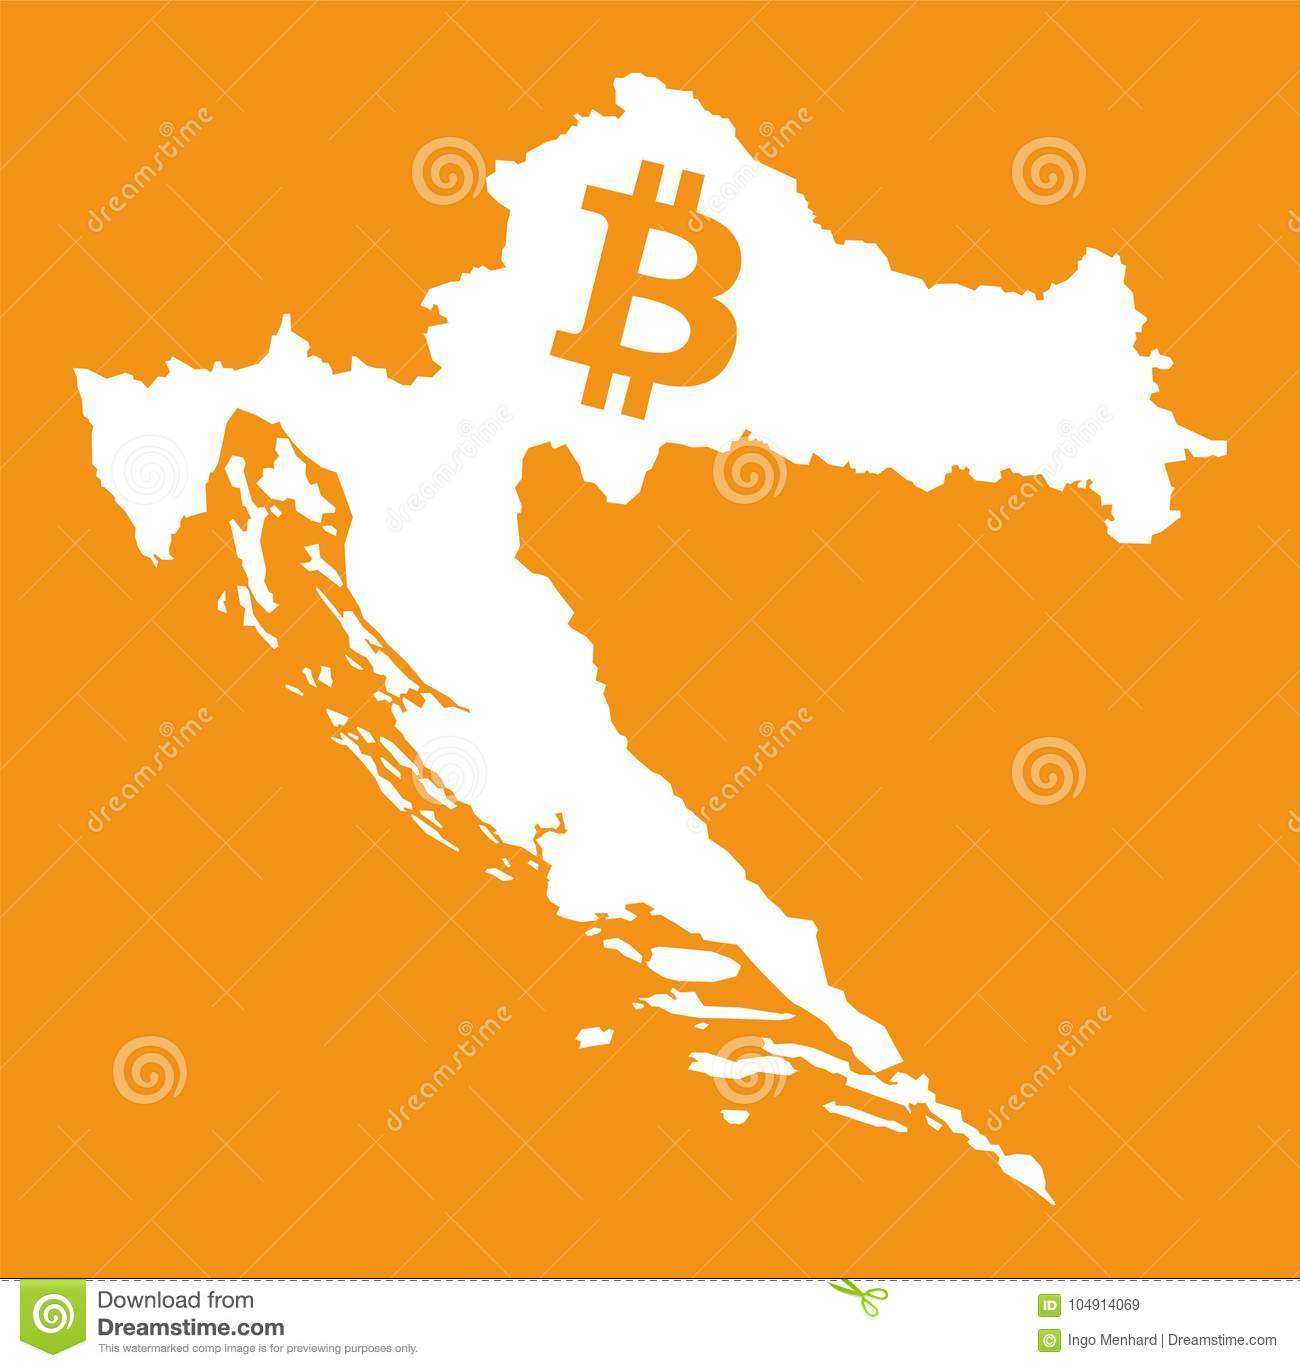 Croatia Map With Bitcoin Crypto Currency Symbol Illustration Stock